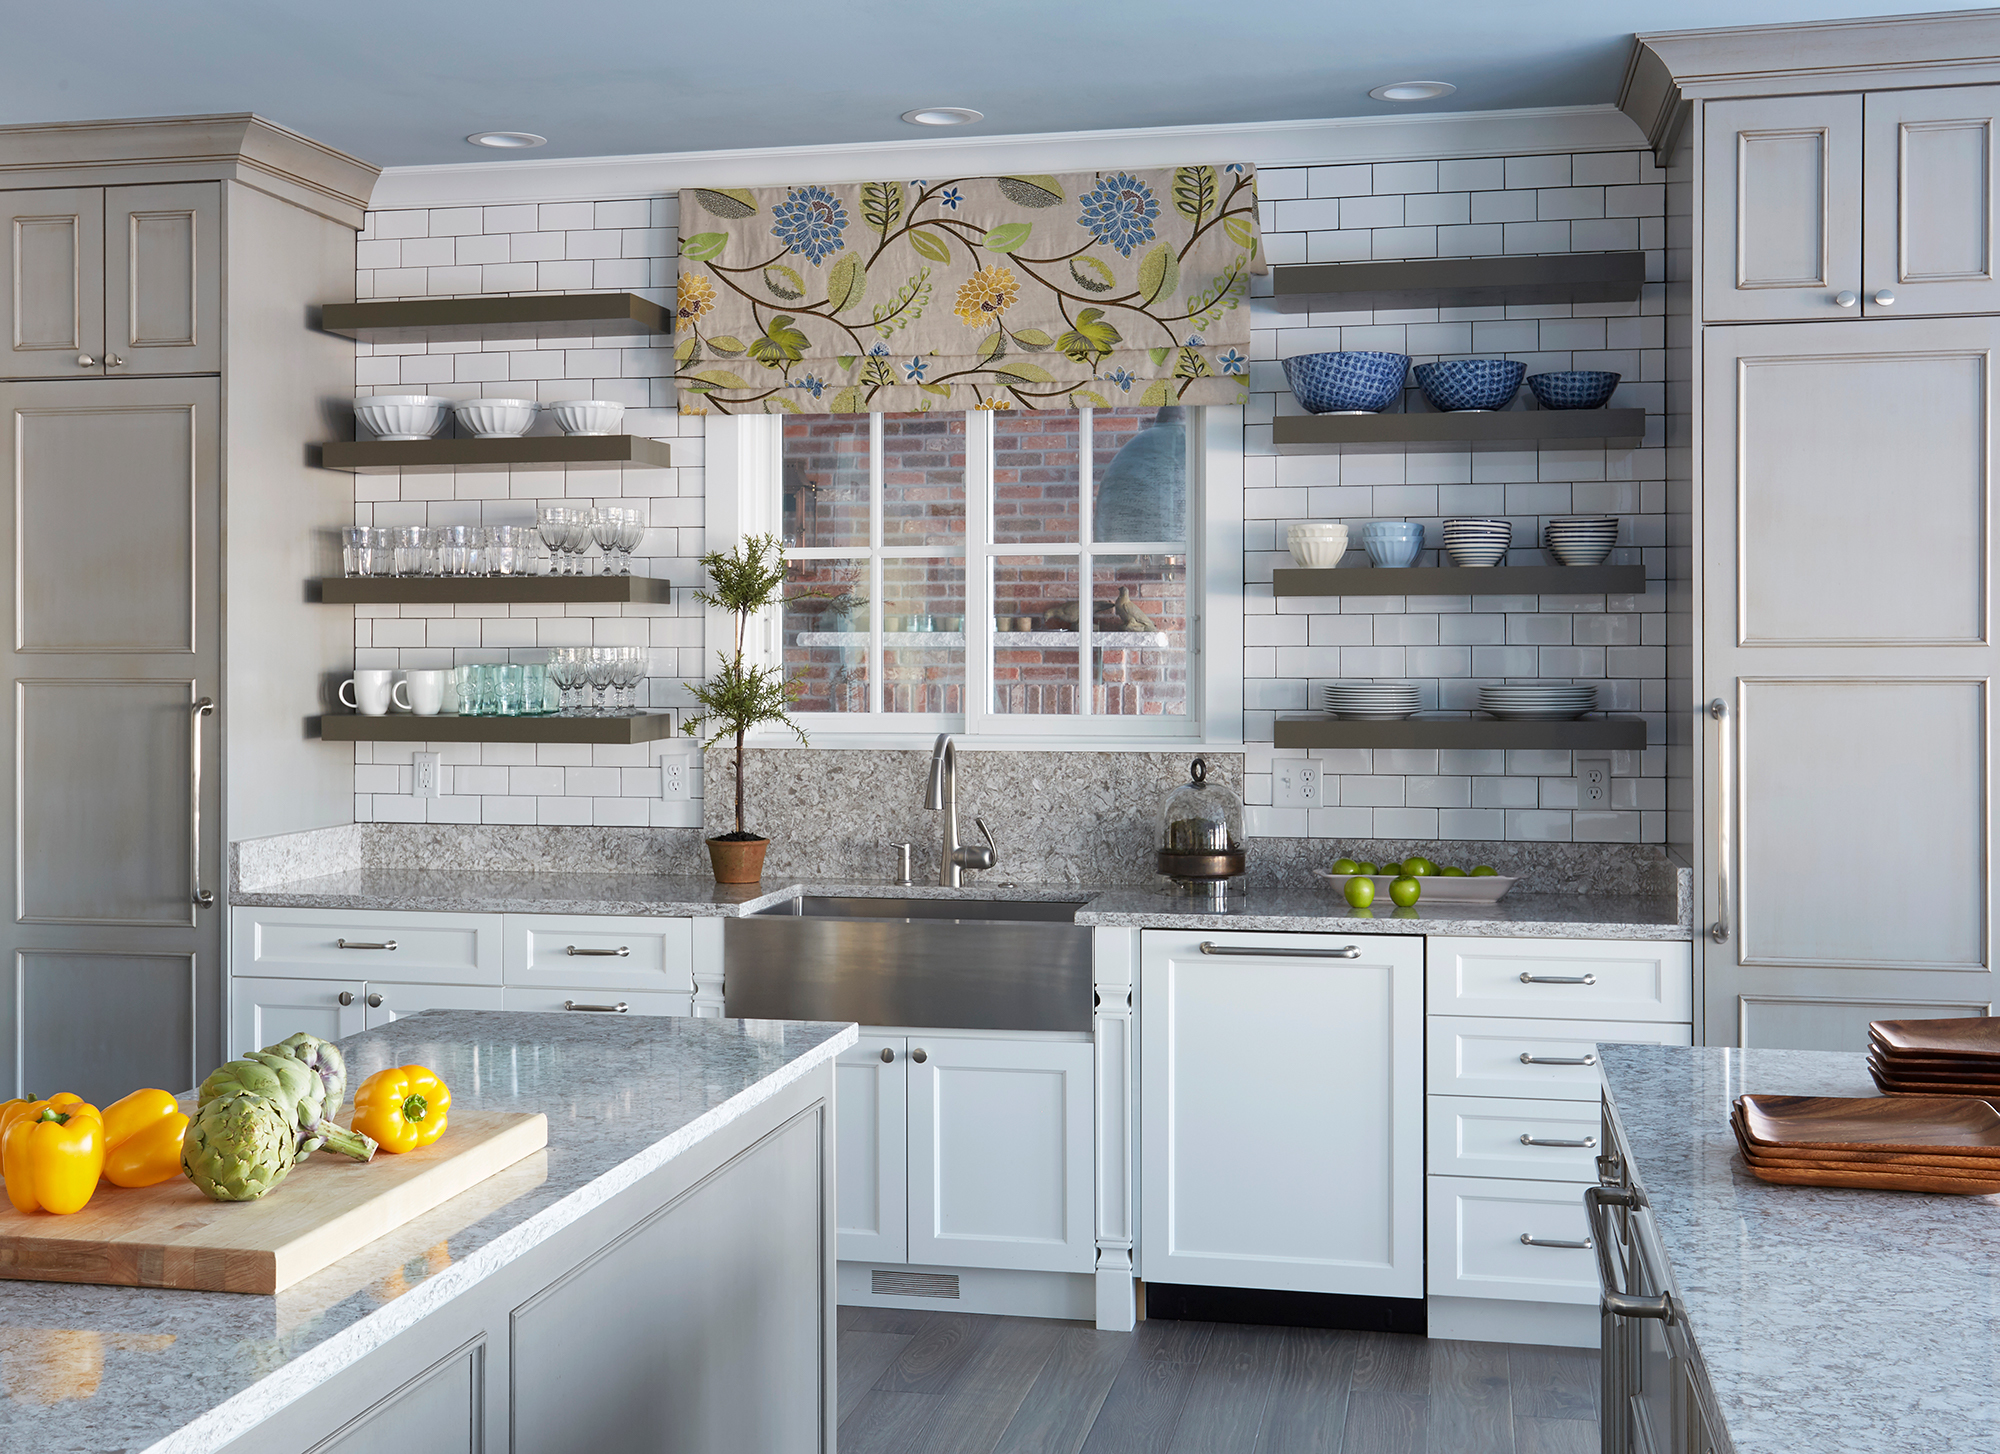 Painted Kitchen Cabinets In White And Island Cottage Gray With Walnut Glaze By Showplace Cabinetry